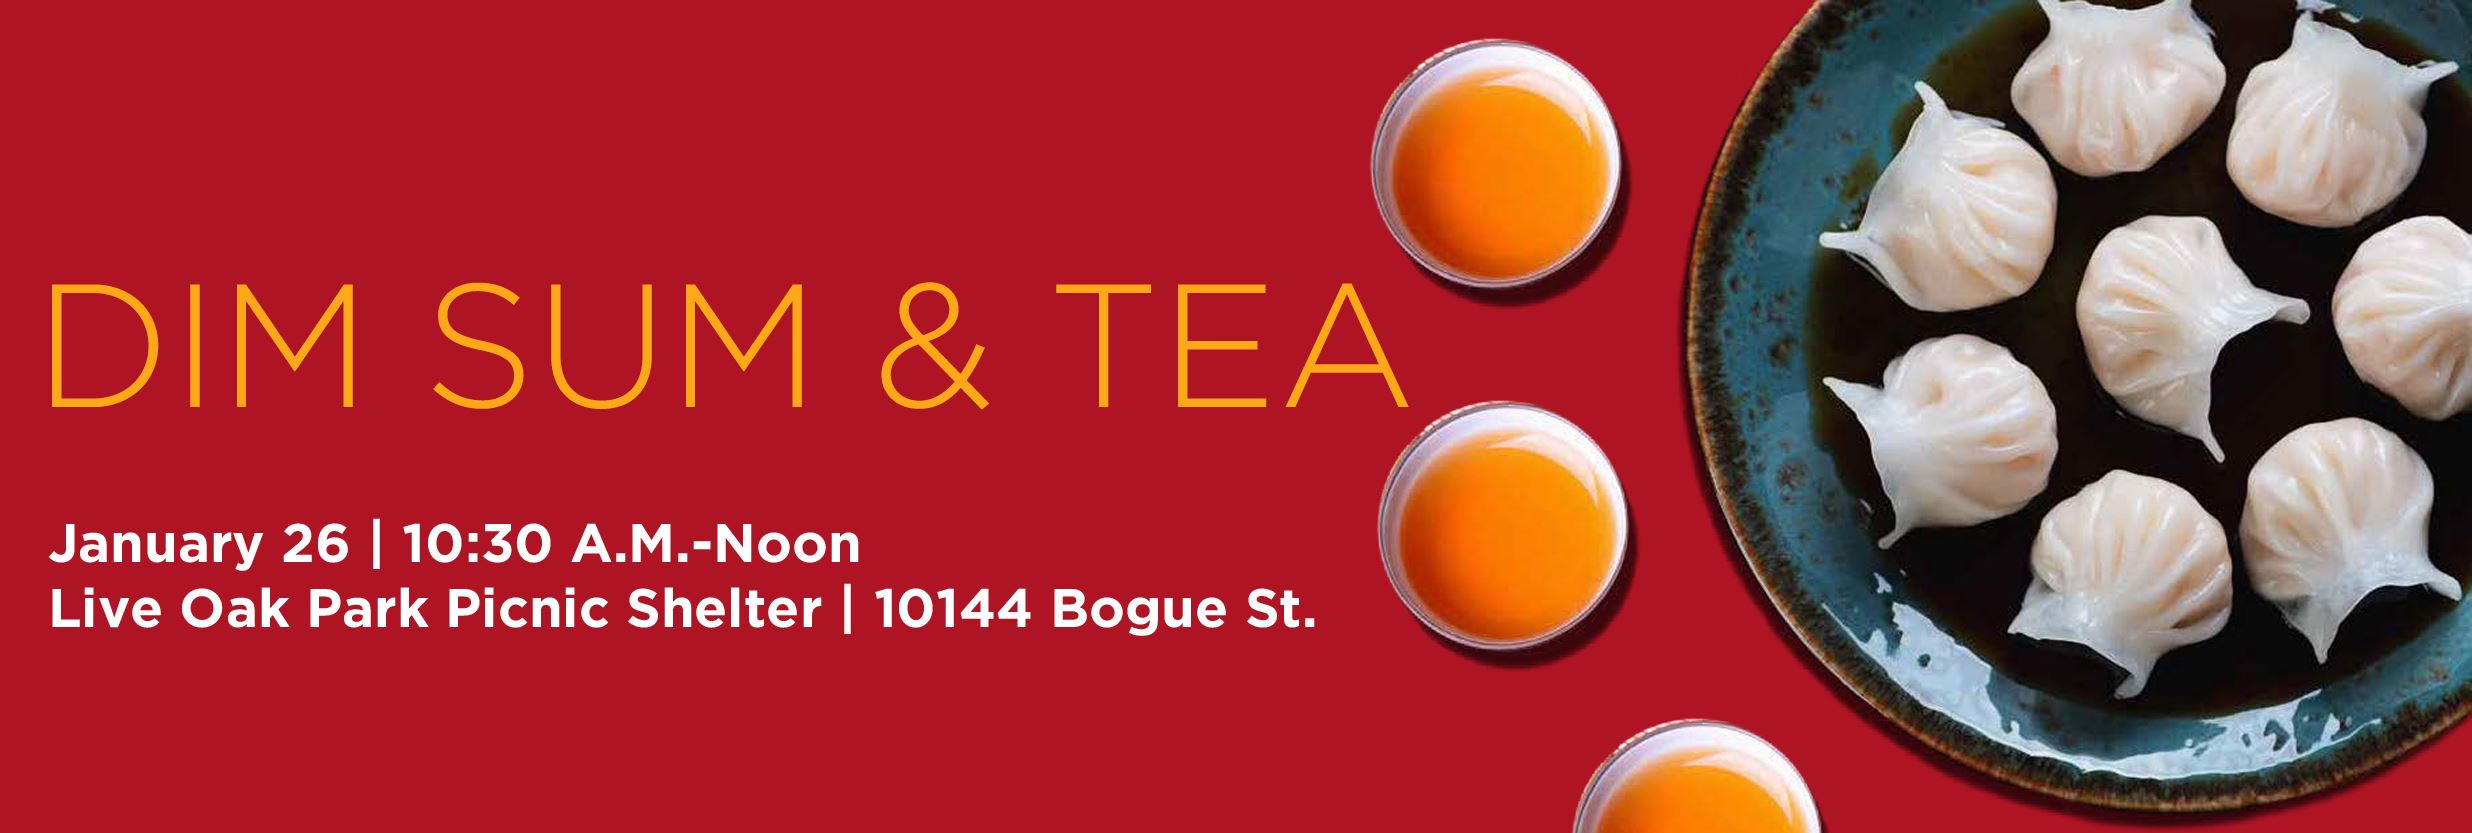 Dim Sum and Tea Web Banner